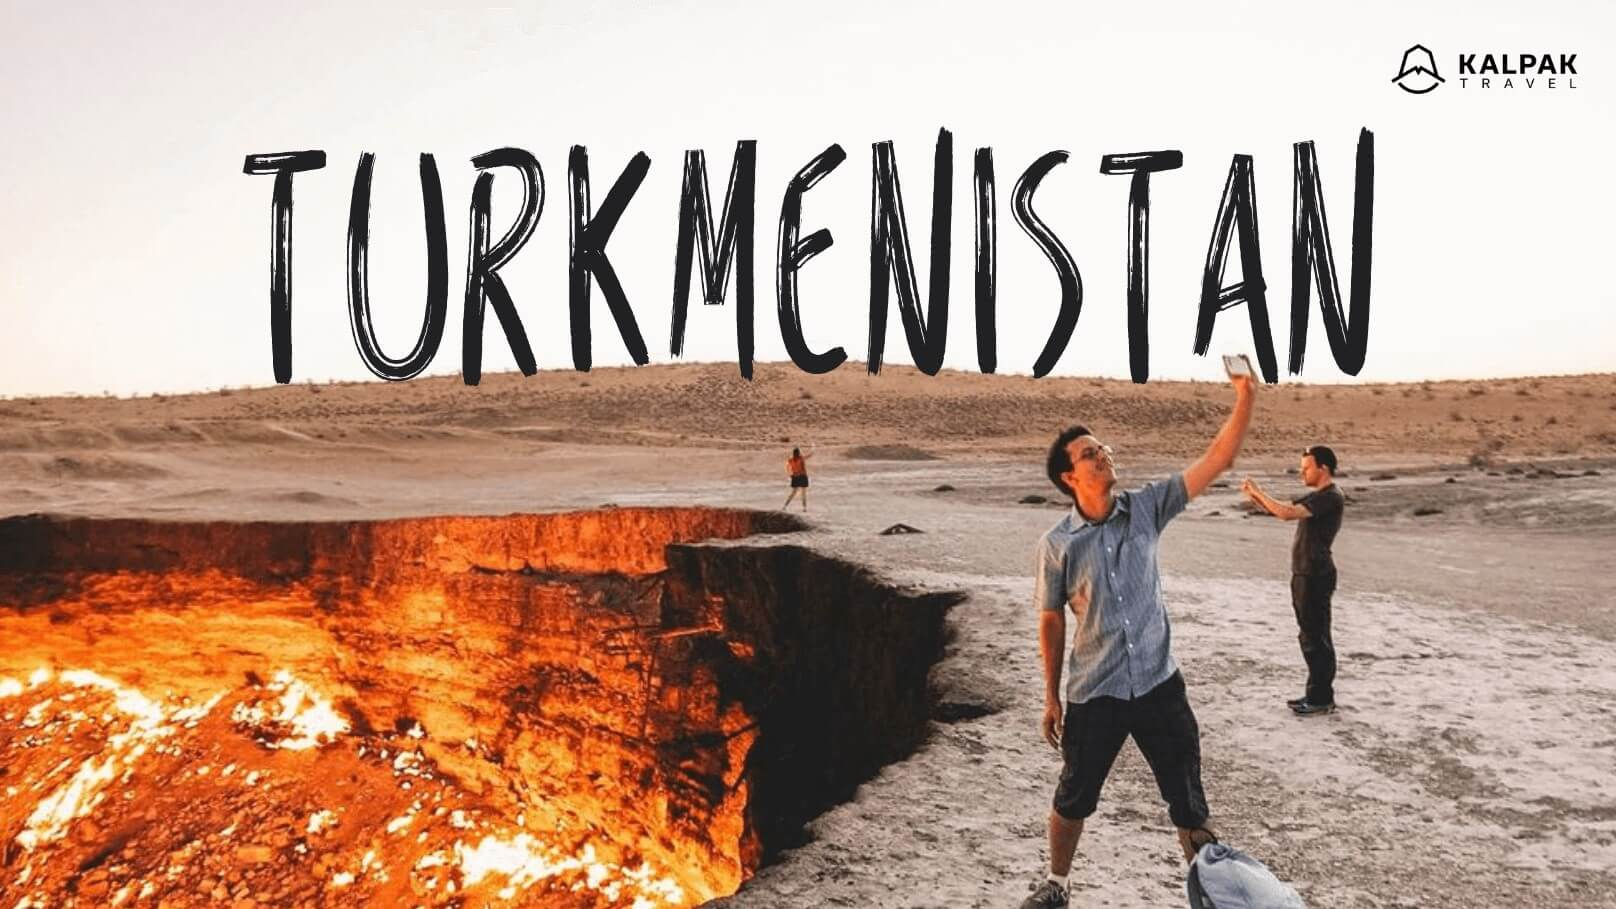 Turkmenistan top places to visit